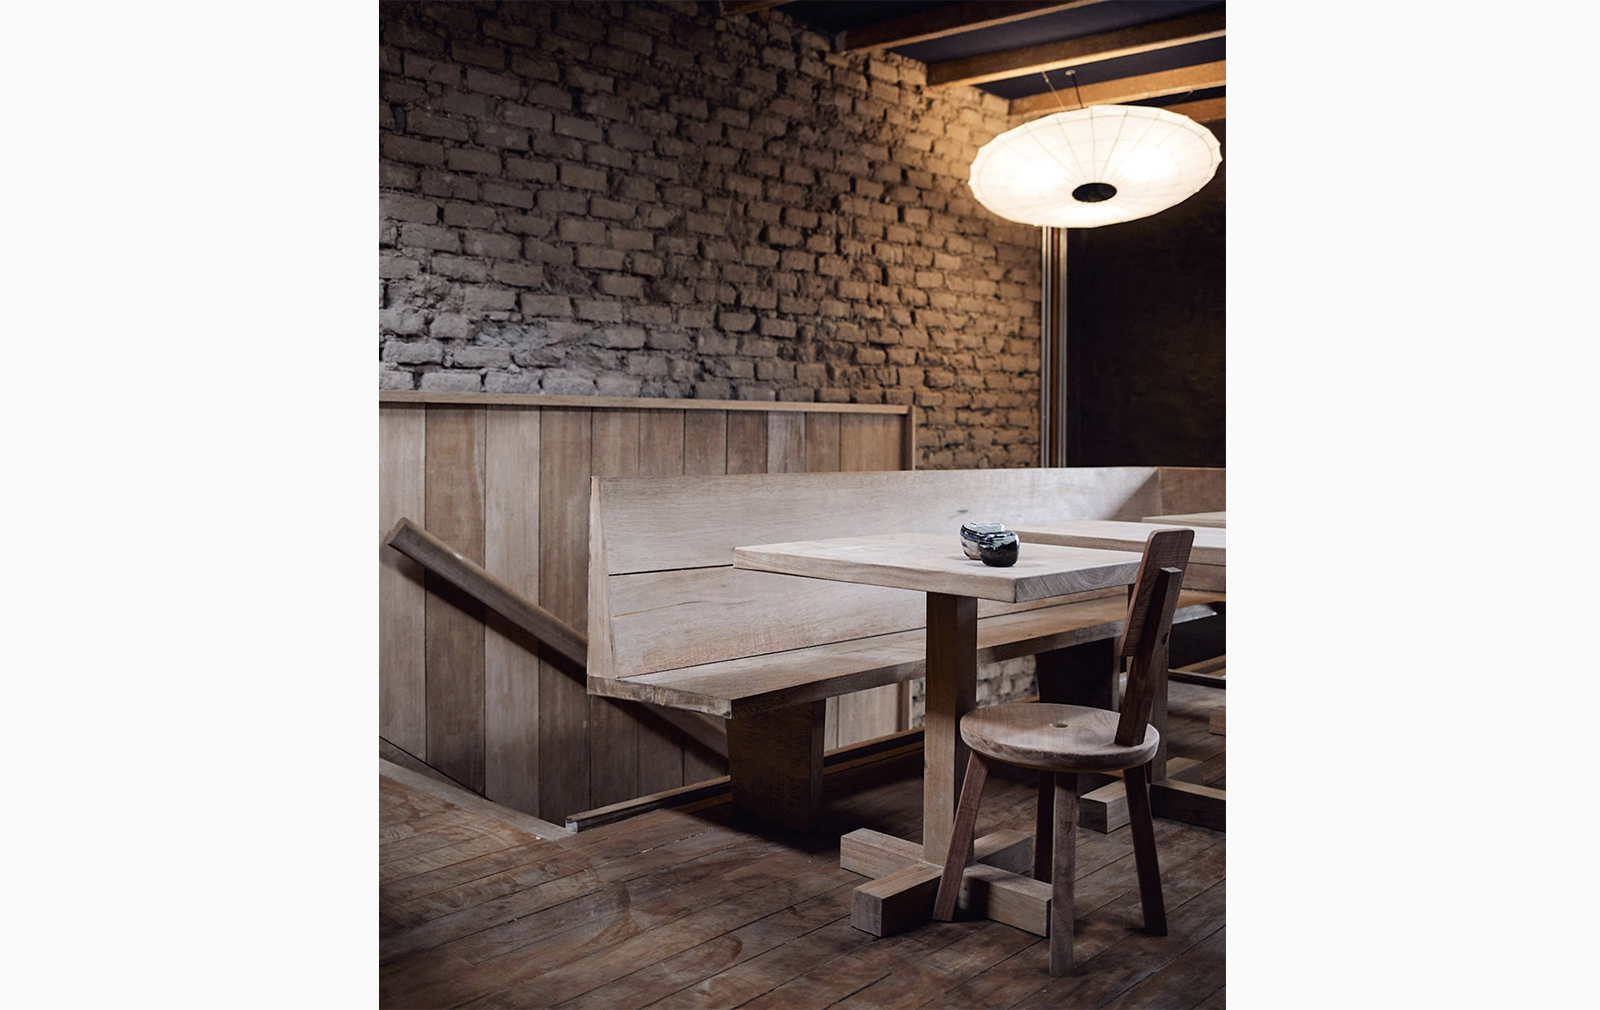 Lima restaurant Mérito channels rustic cabin vibes